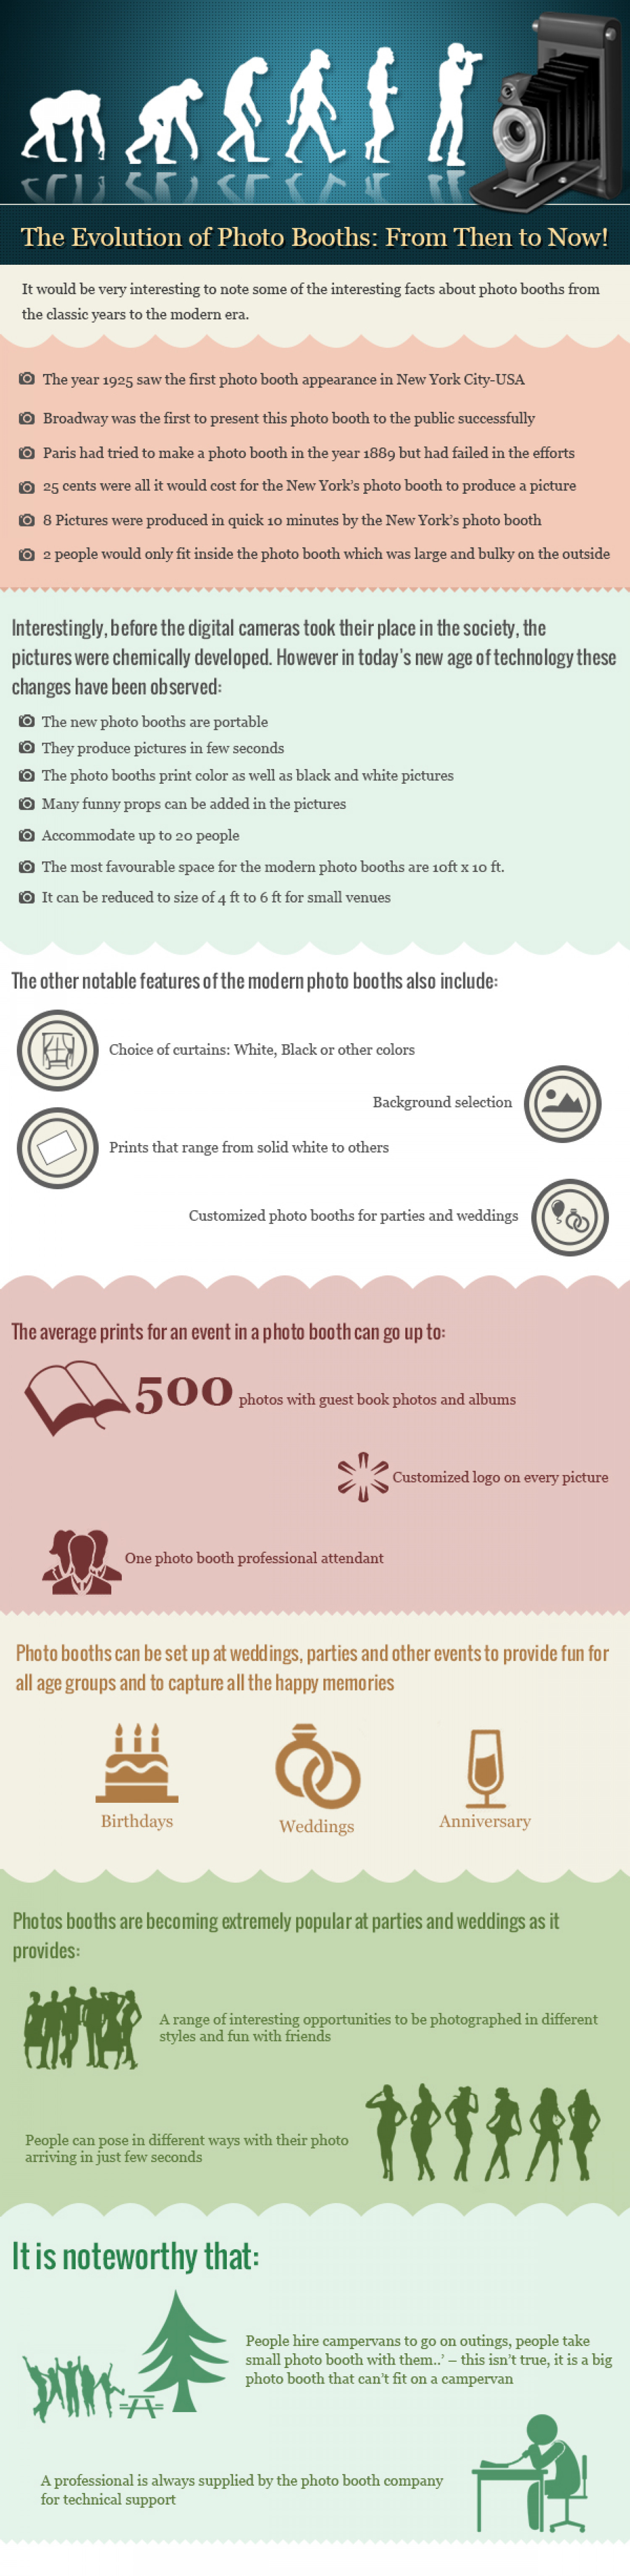 The Evolution of Photo Booths: From Then to Now! Infographic